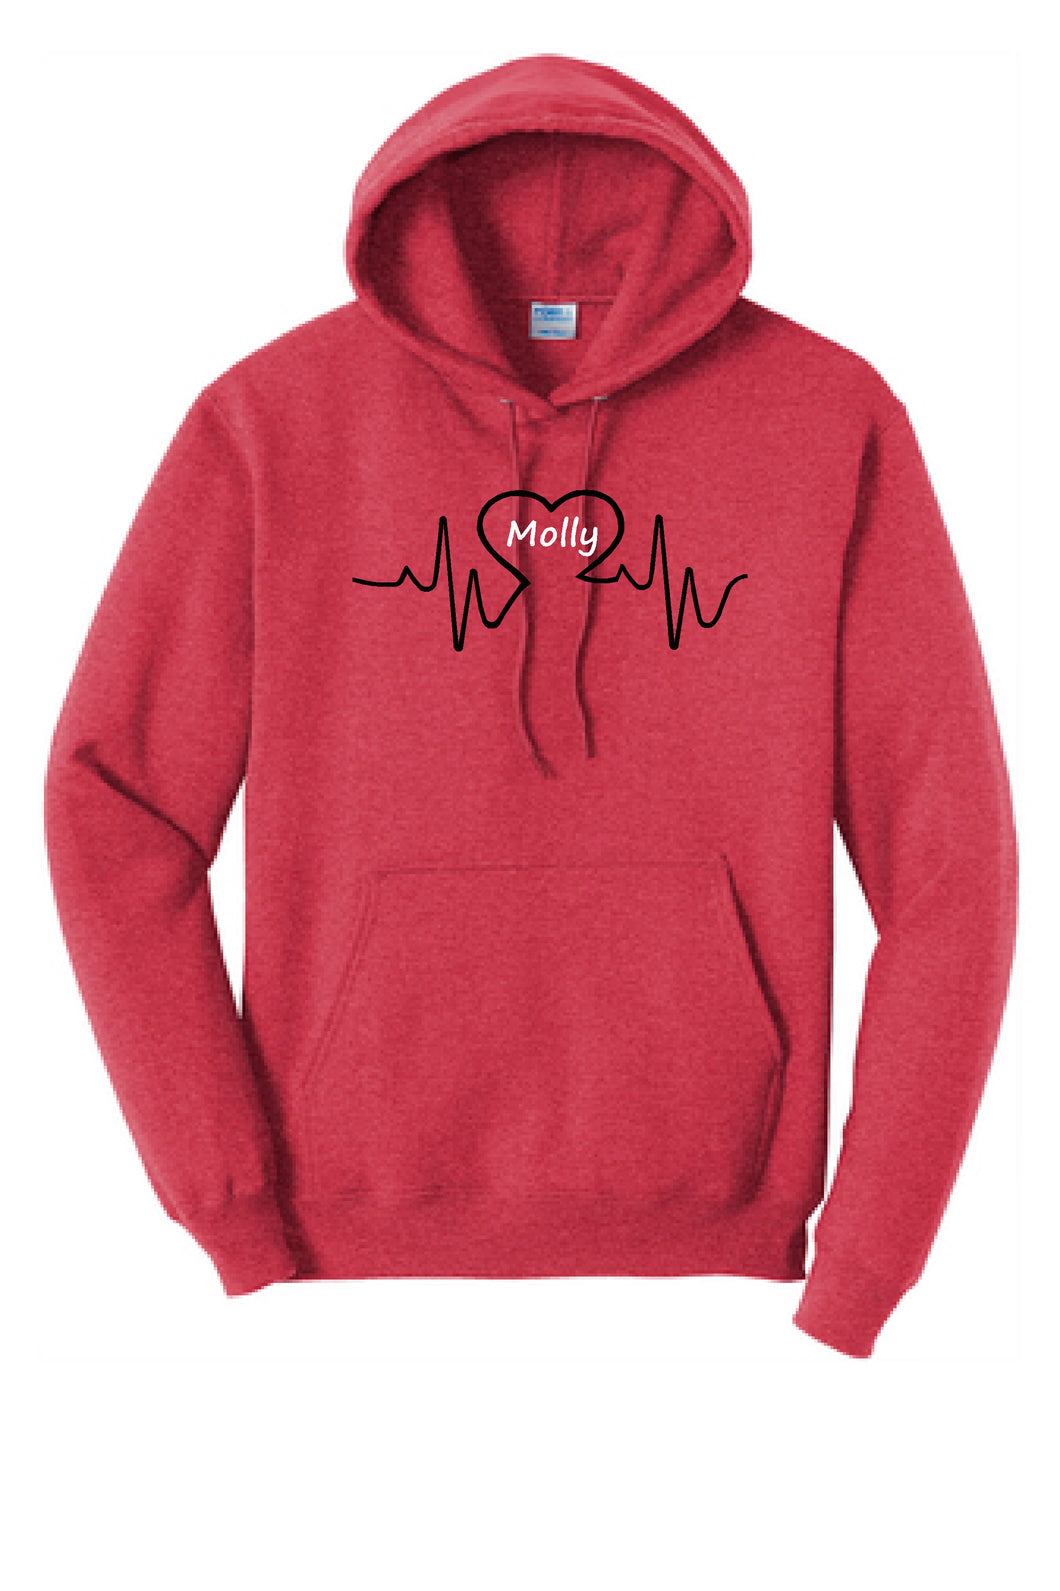 Molly Little Warrior Sweatshirt